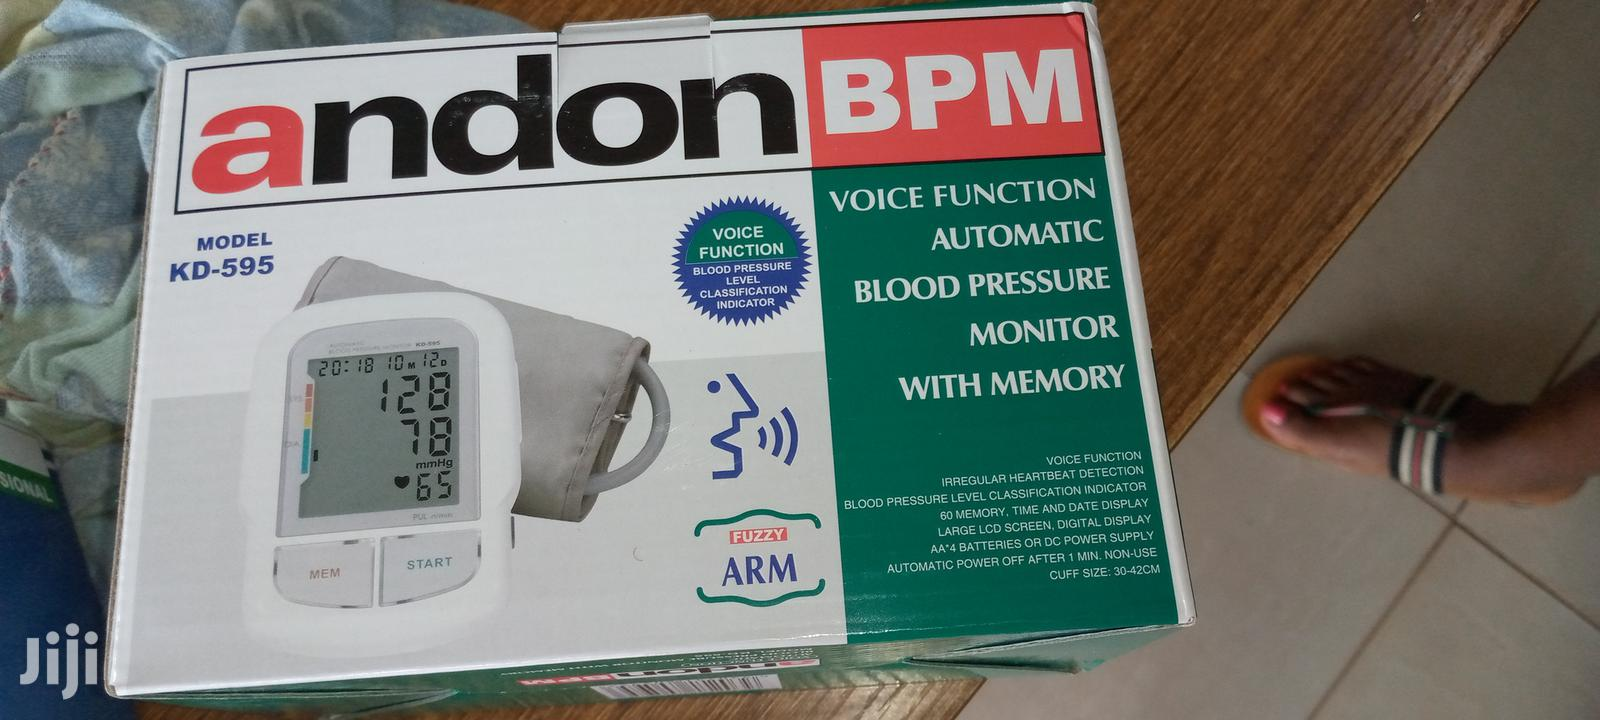 Archive: Andon BPM Voice Function Automatic Blood Pressure Monitor Wi